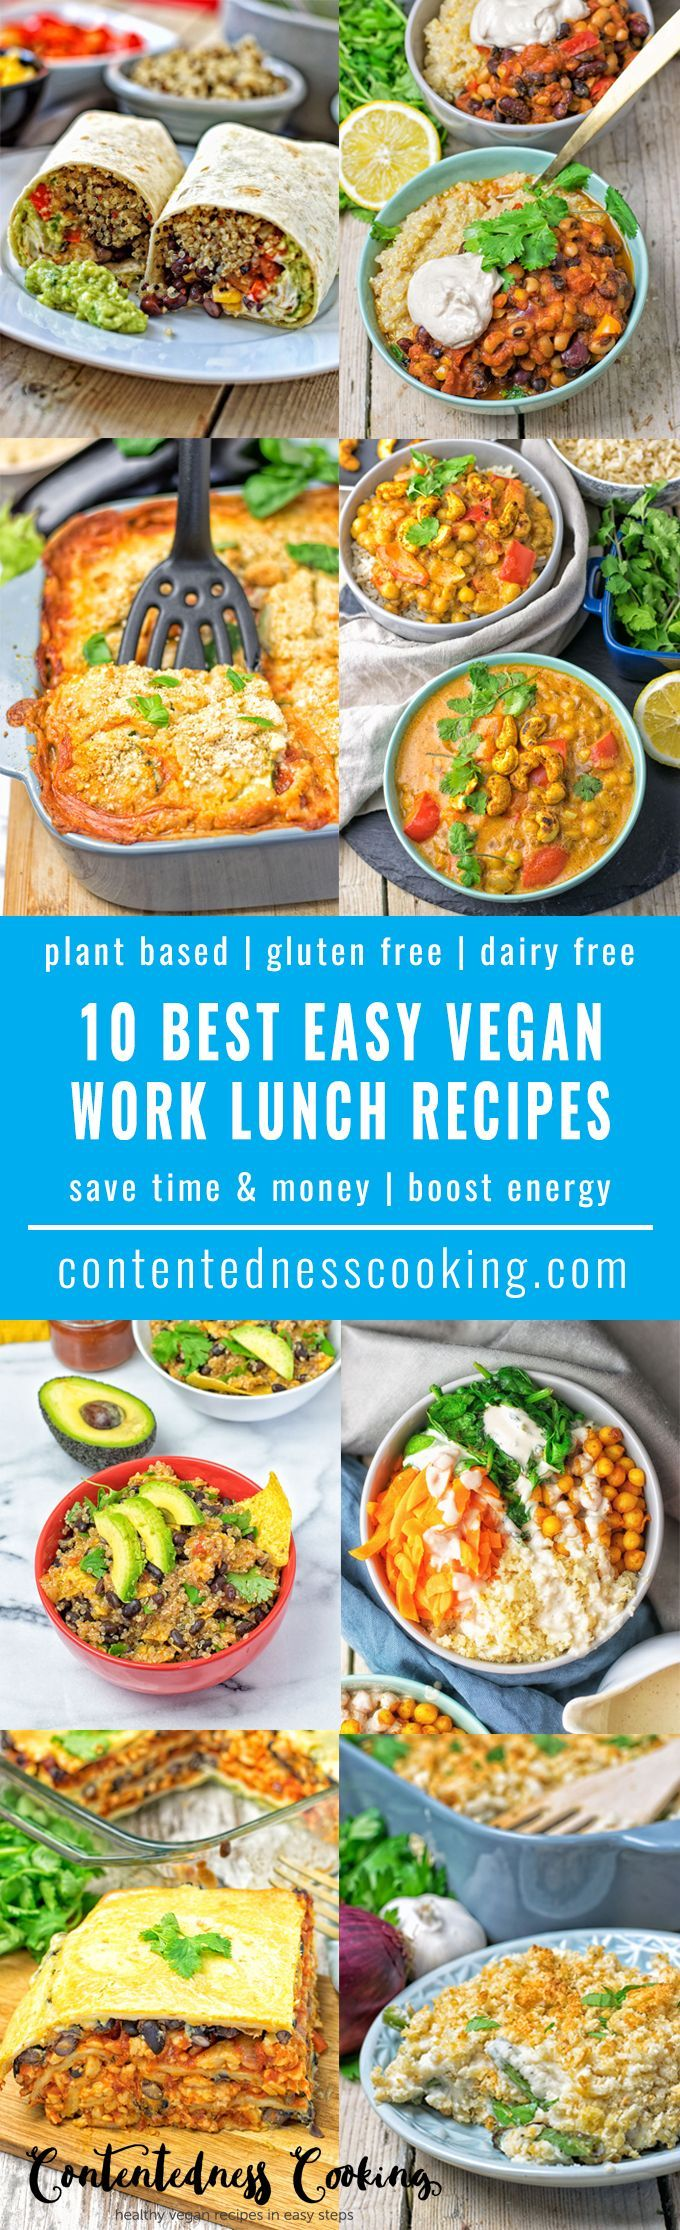 10 Best Easy Vegan Work Lunch Recipes Vegan Lunch Recipes